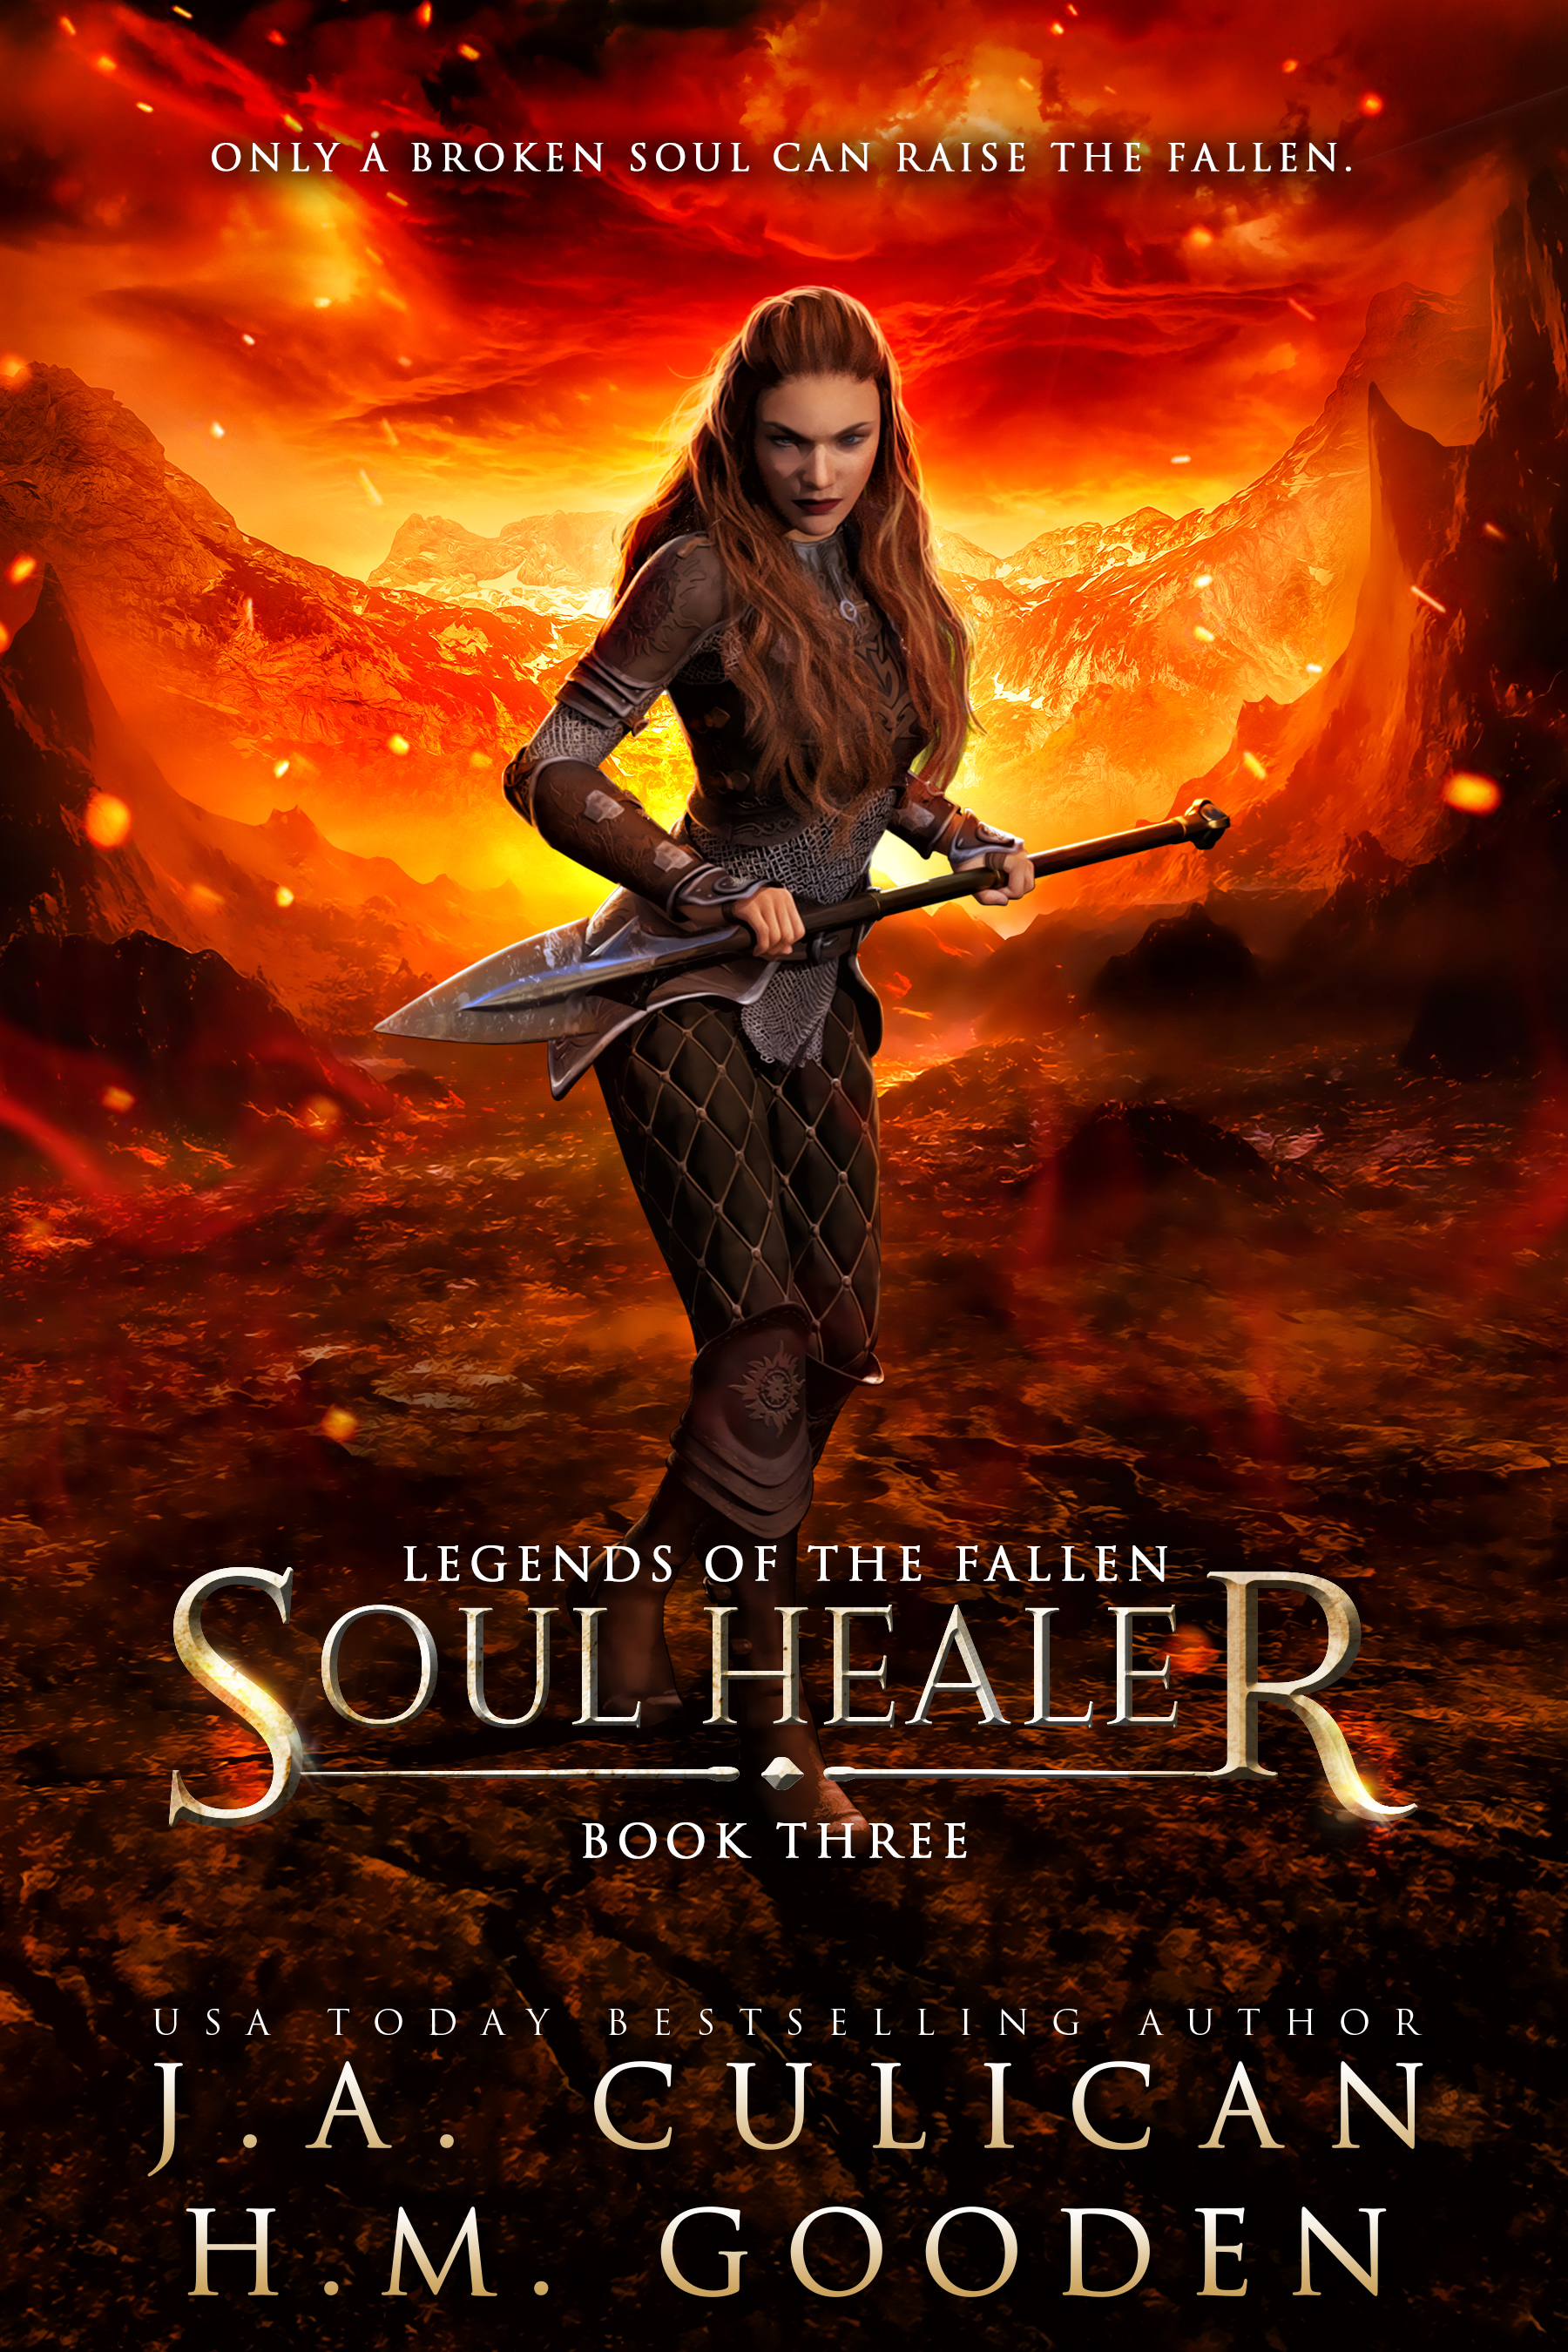 Legend of the Fallen book 3 - Soul Healer